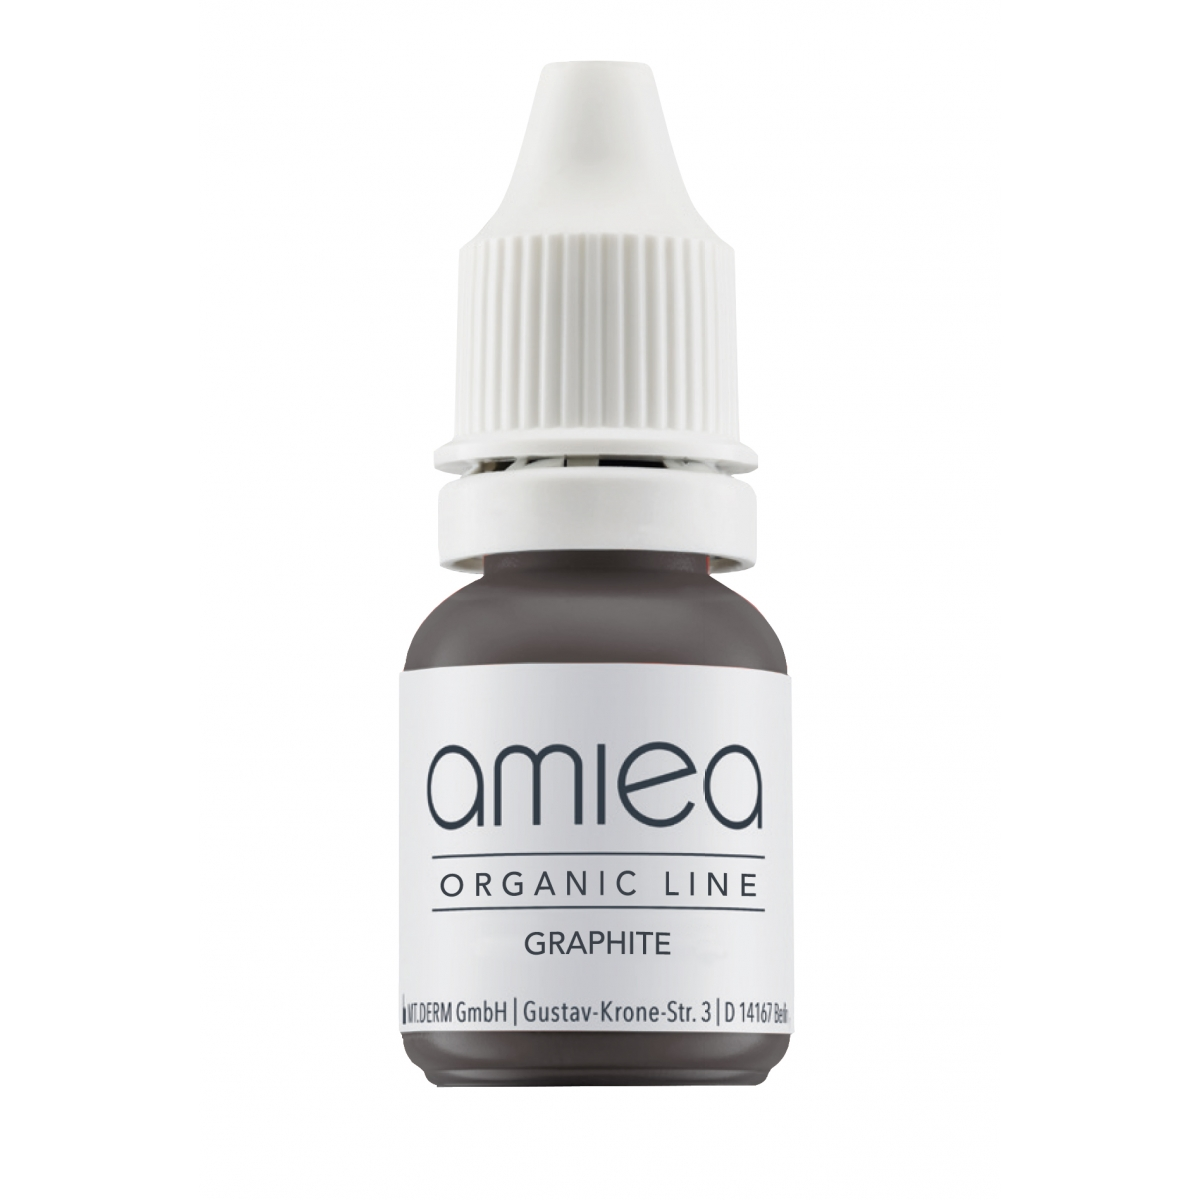 Organicline (10 ml) - PIGMENTS AMIEA ORGANICLINE GRAPHITE, Flacon 10 ml